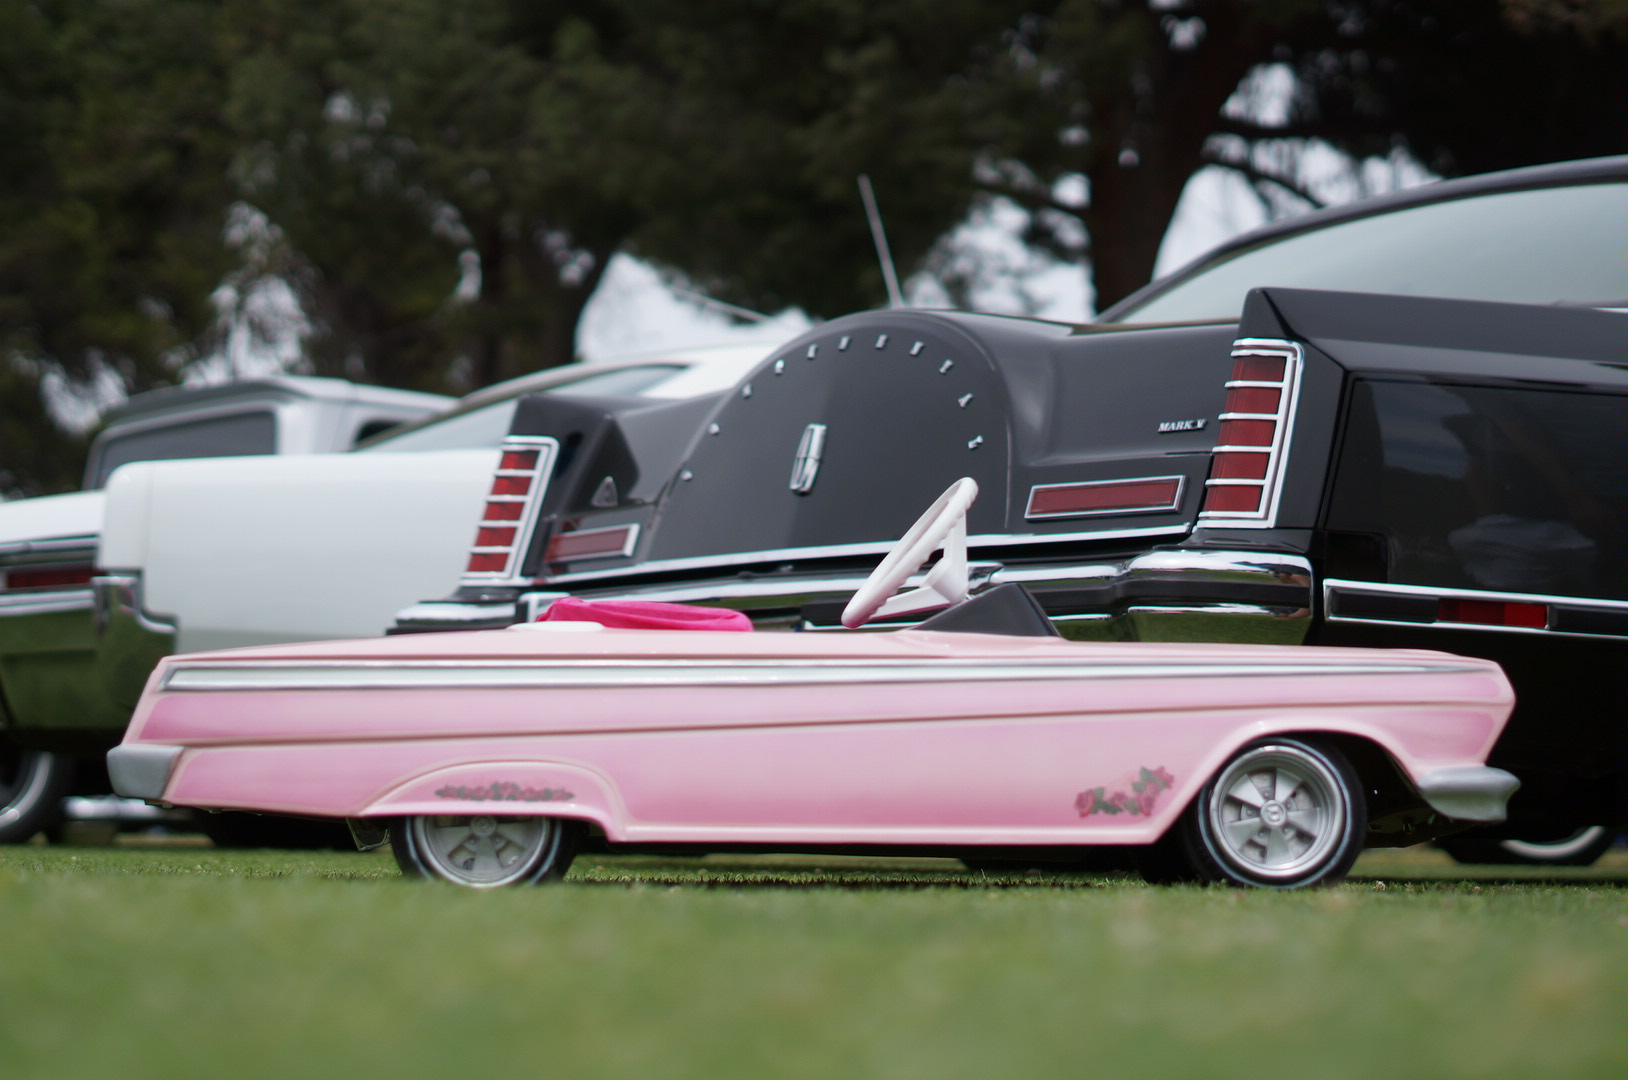 Dad Builds Incredible Low Rider Pedal Car For Daughter